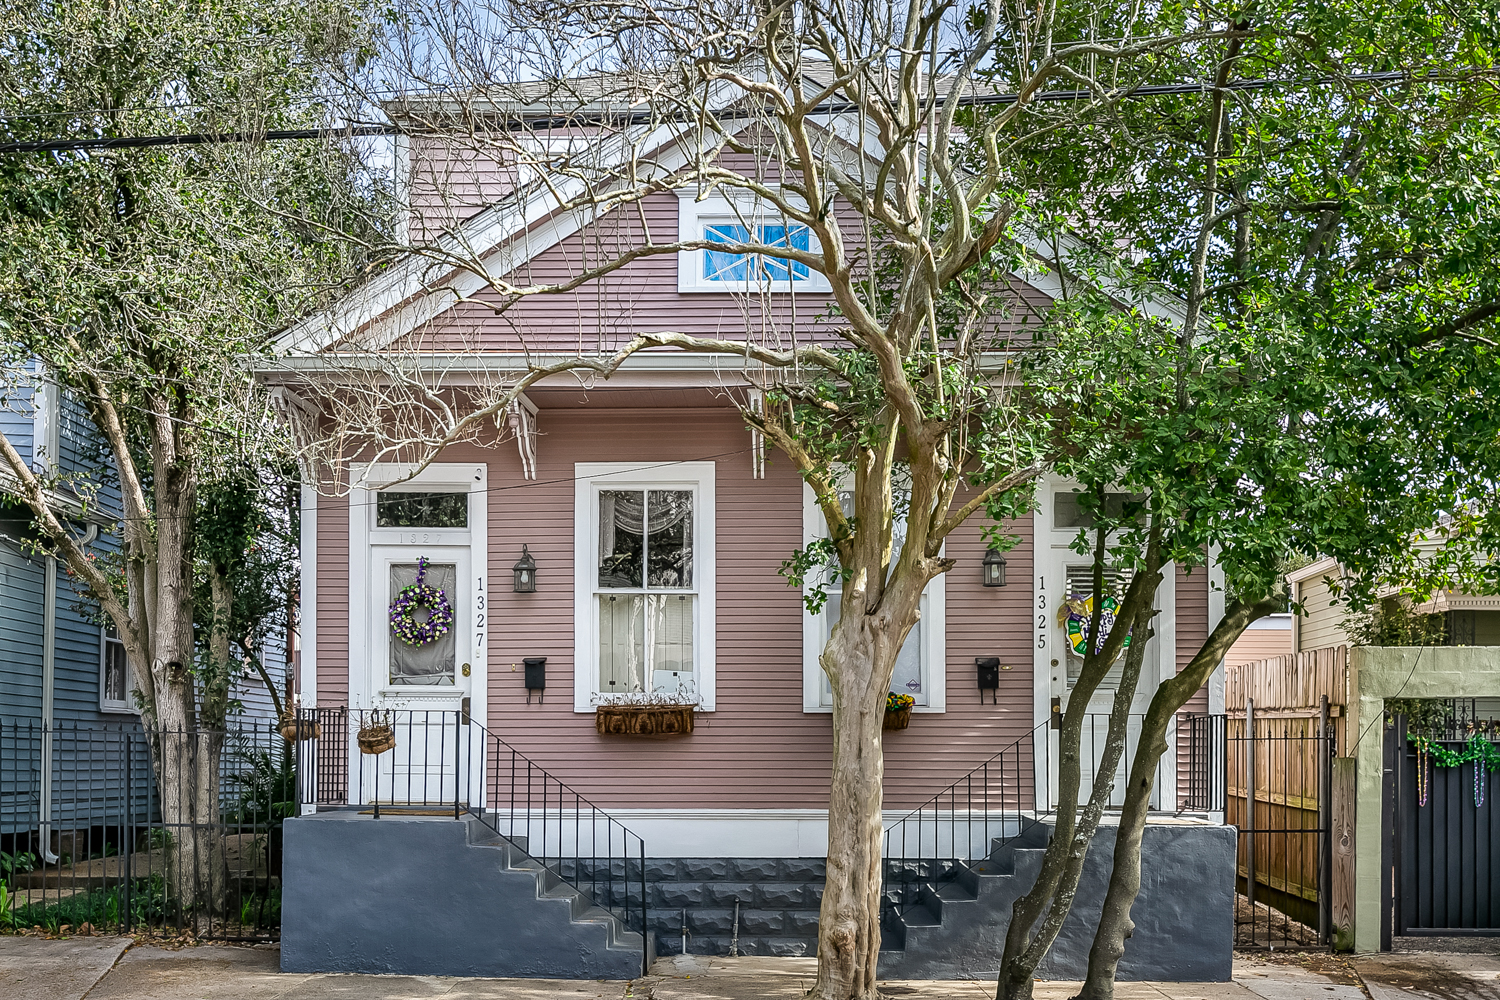 Location! Location! Location! 2 bedroom, 1 1/2 bath Garden District Furnished rental.  Walk to Magazine to restaurants, grocery stores, drugstore, coffee shops, retail shops. Close to Downtown & the French Quarter, 2 blocks from the Street Car and 3 blocks from Magazine!